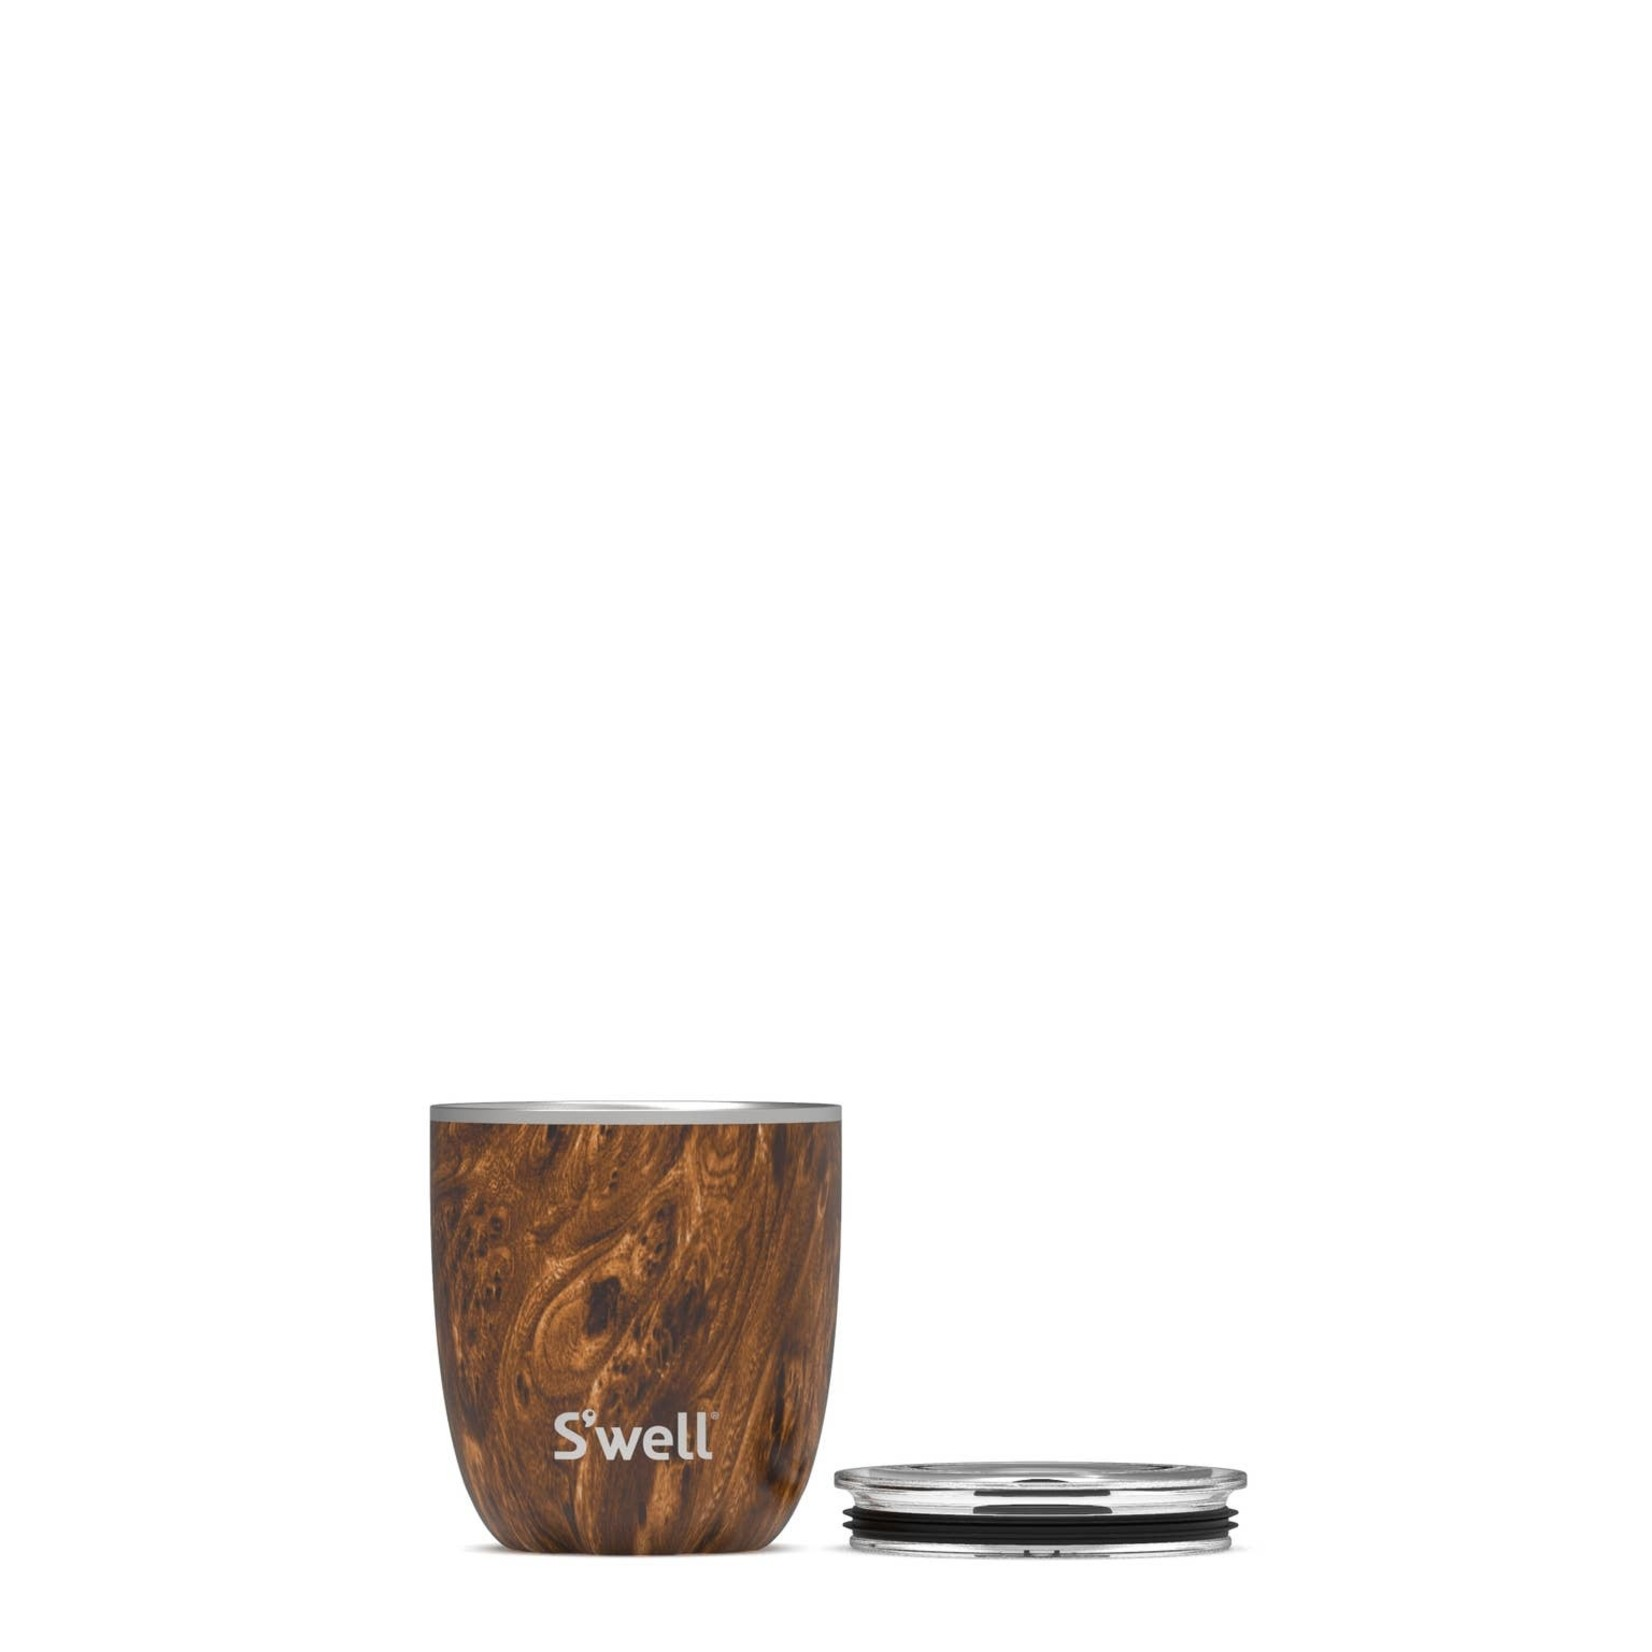 S'well S'well Bottle 10oz Tumbler w/Lid Teakwood